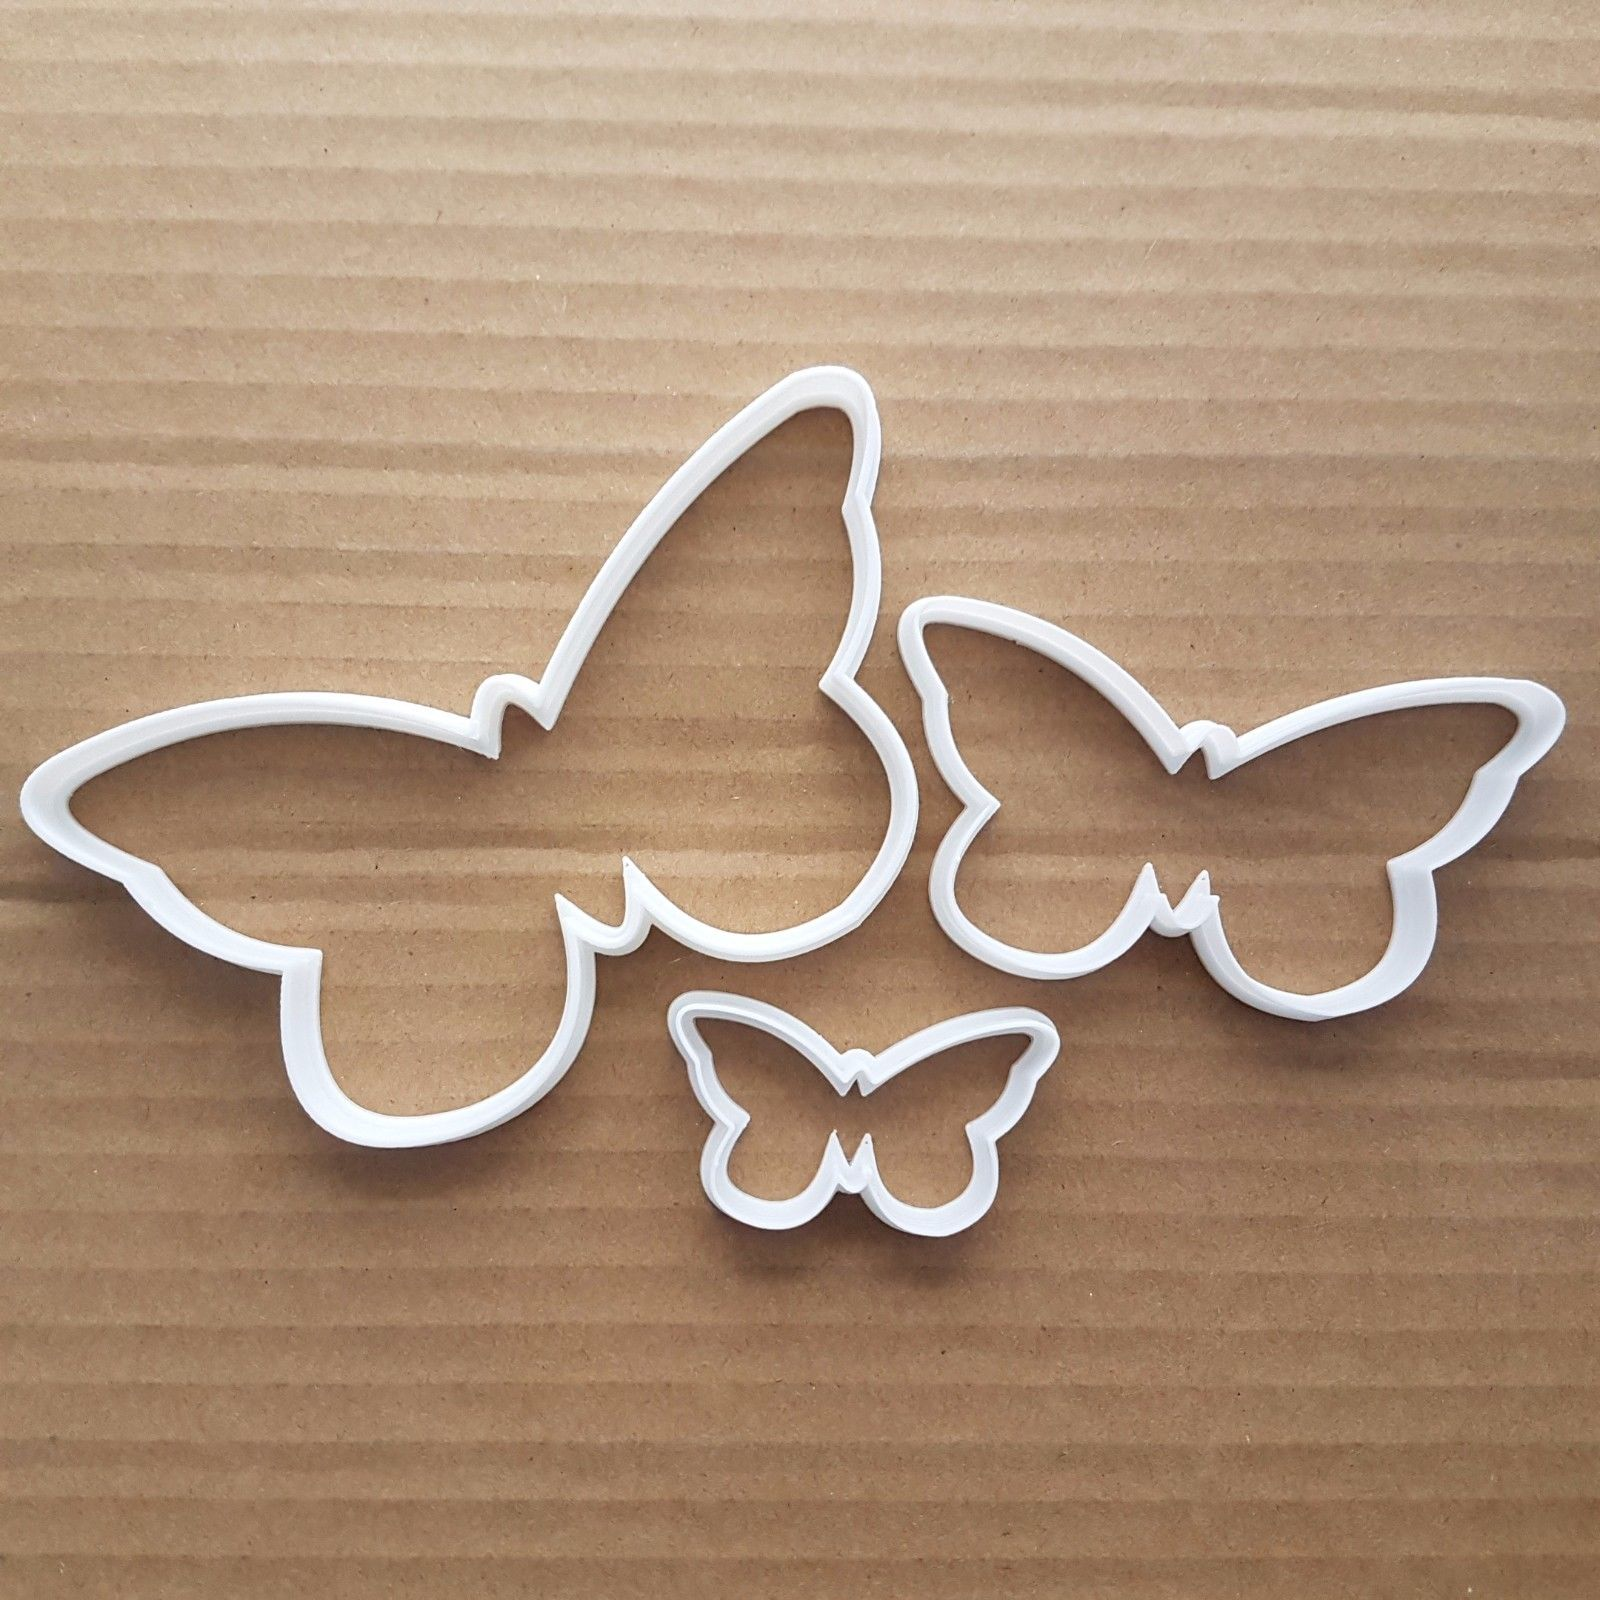 10CM Butterfly Cookie Cutter Biscuit Dough Icing Insect Animal Shap Biscuit Cake